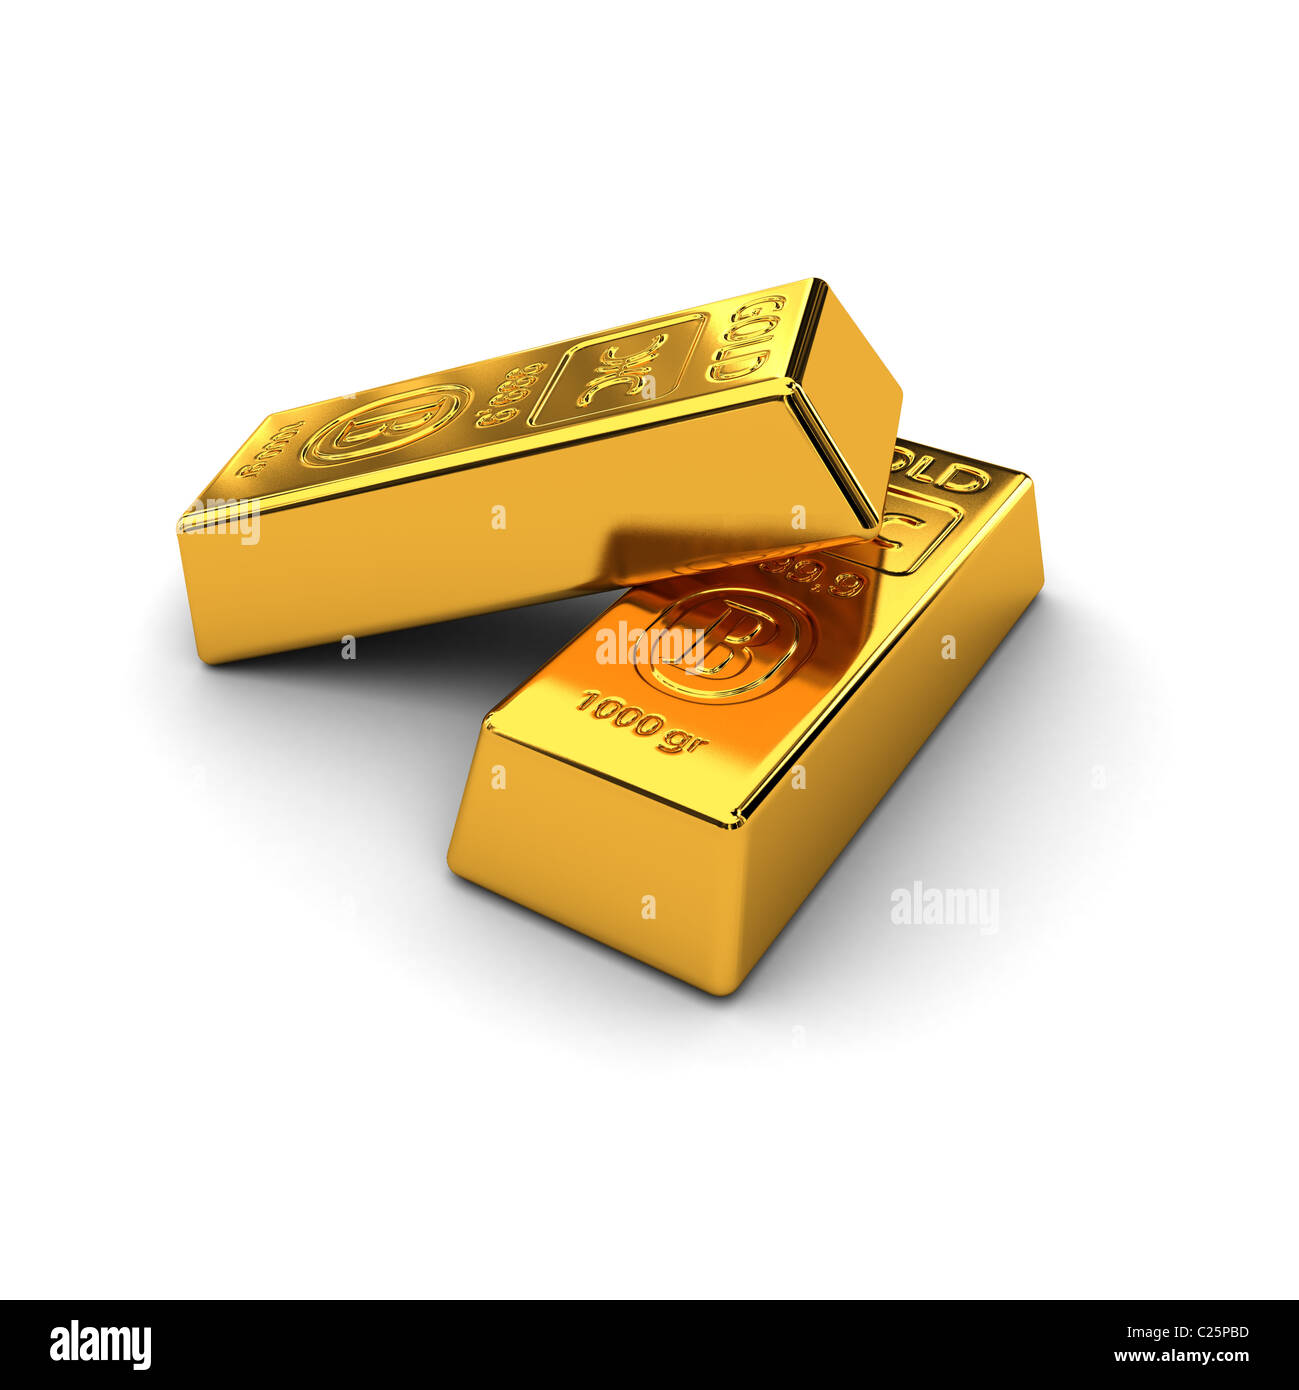 Two gold bars - Stock Image